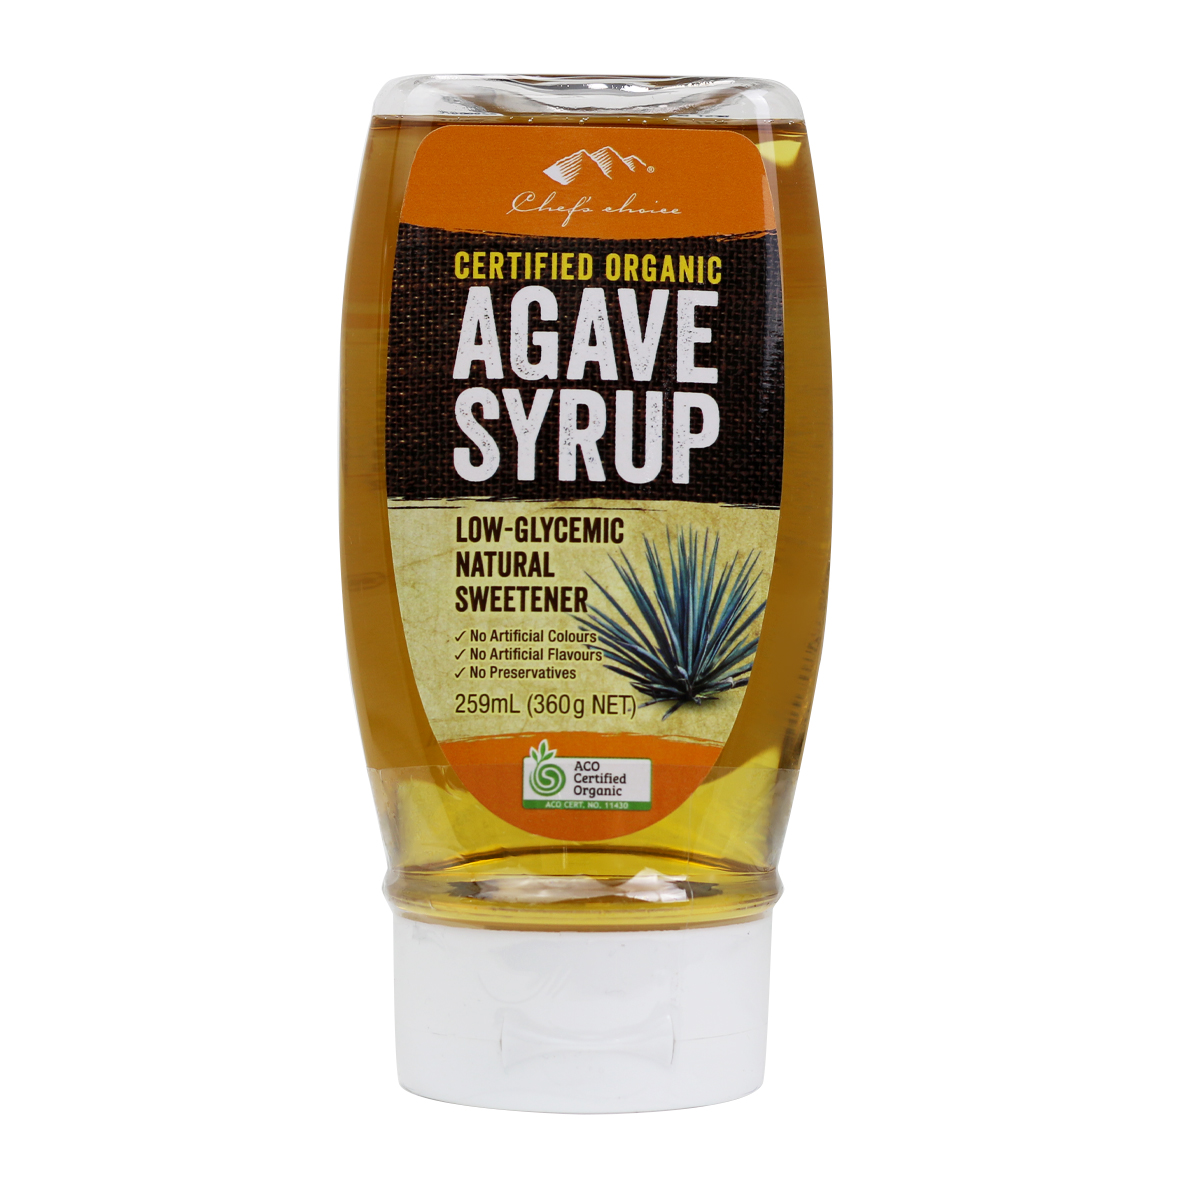 Pure Certified Organic Agave Syrup 259mL - Light